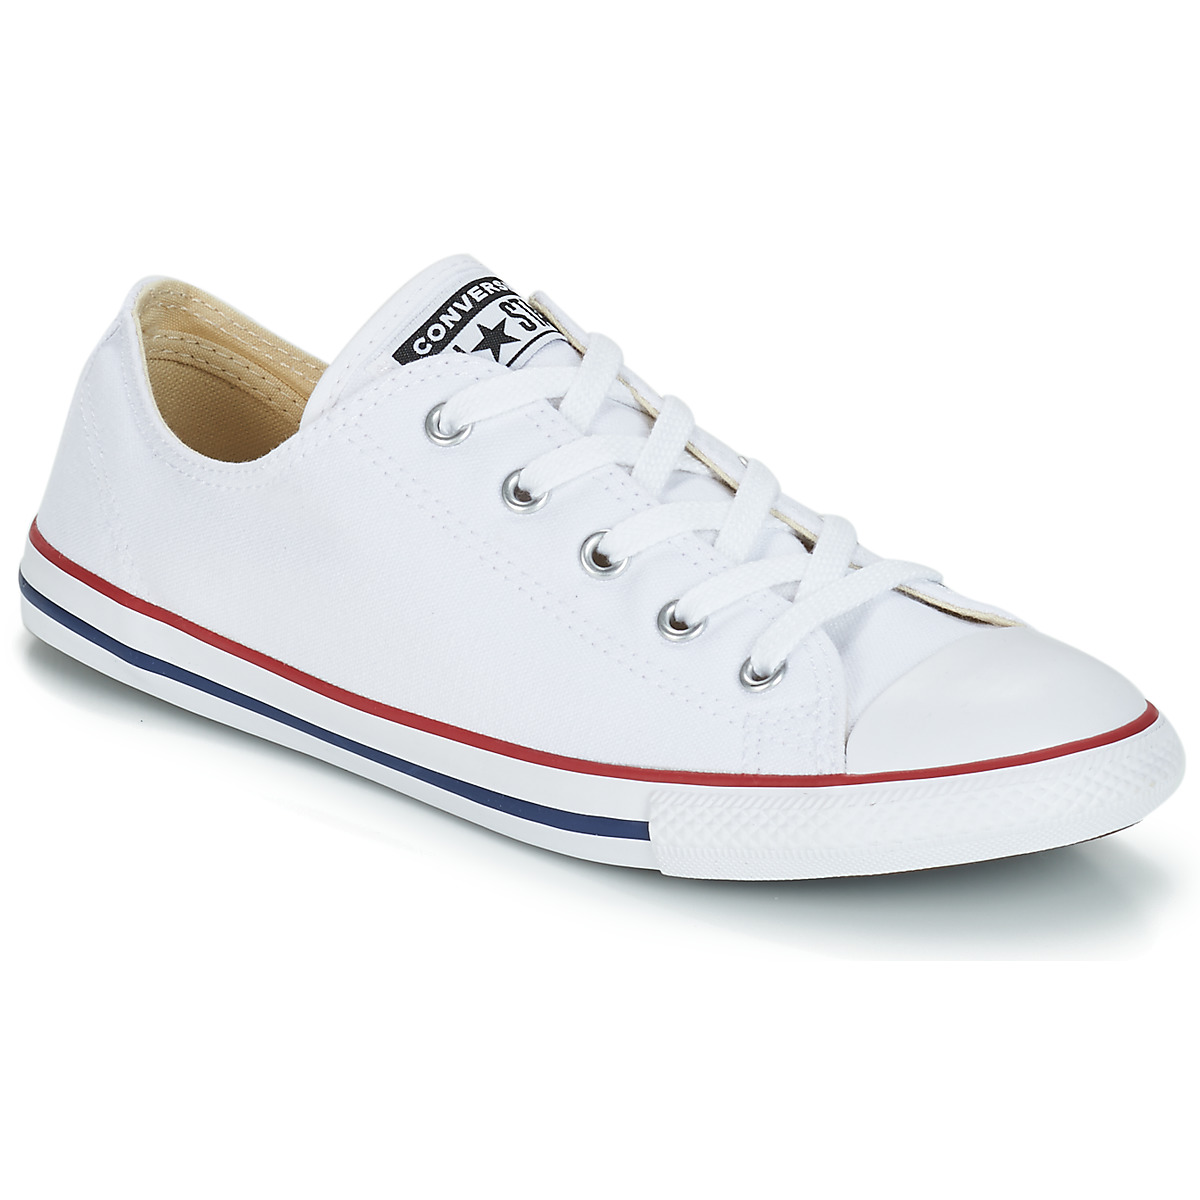 Converse ALL STAR DAINTY OX White / Red